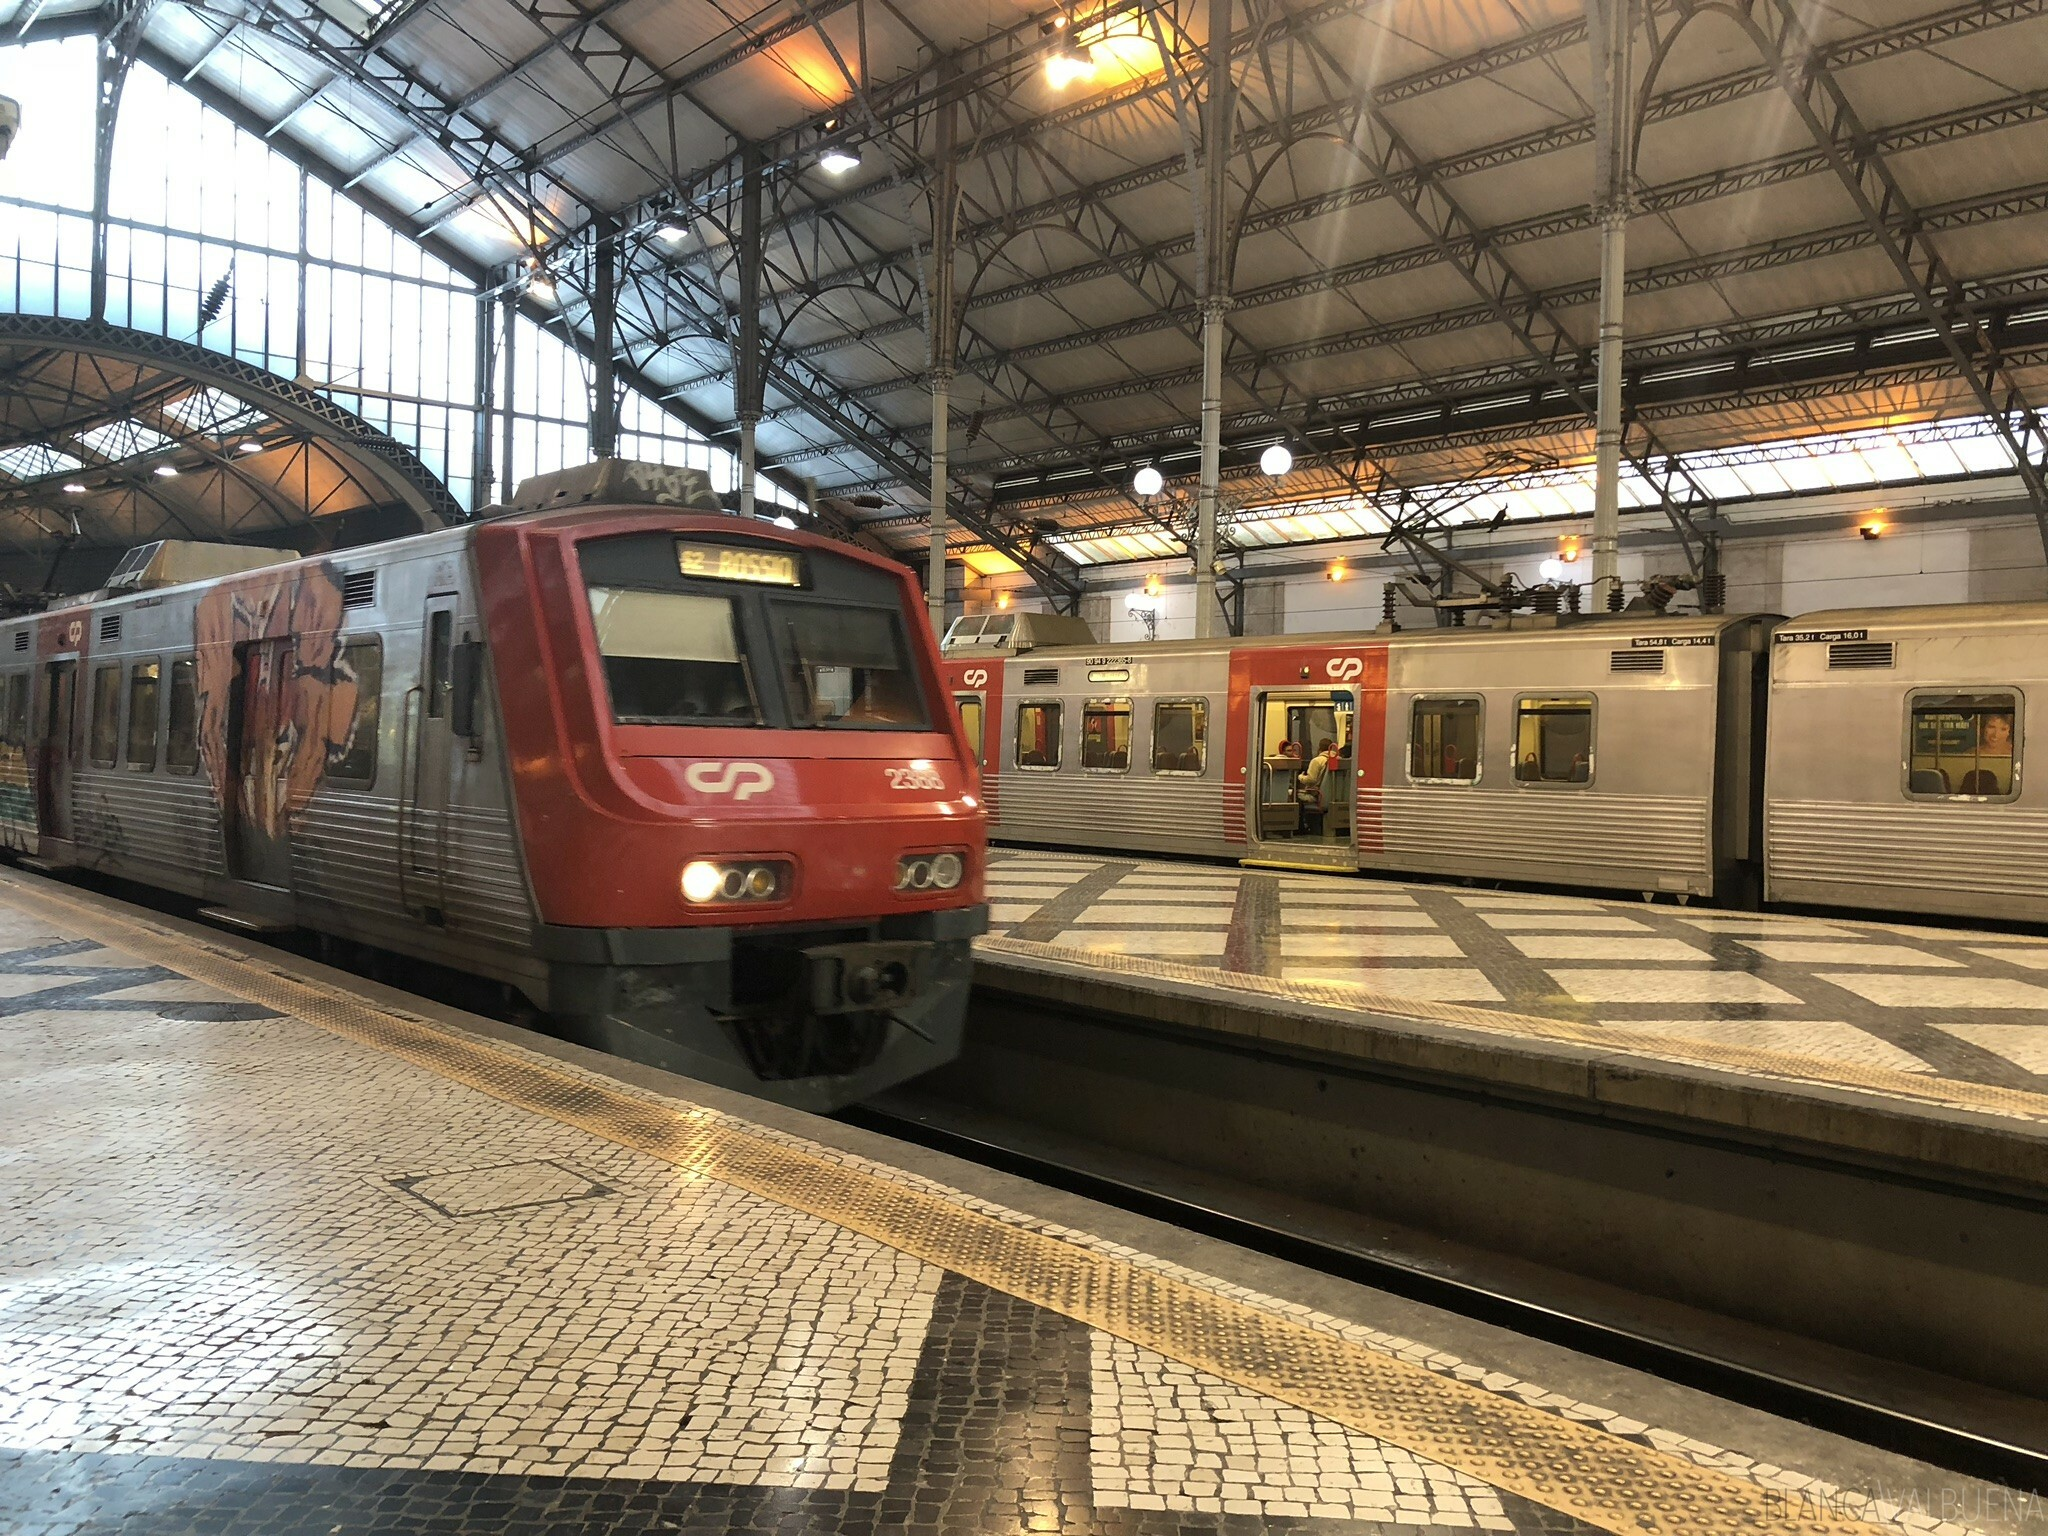 How much does the train from Lisbon to Sintra cost? Under €3